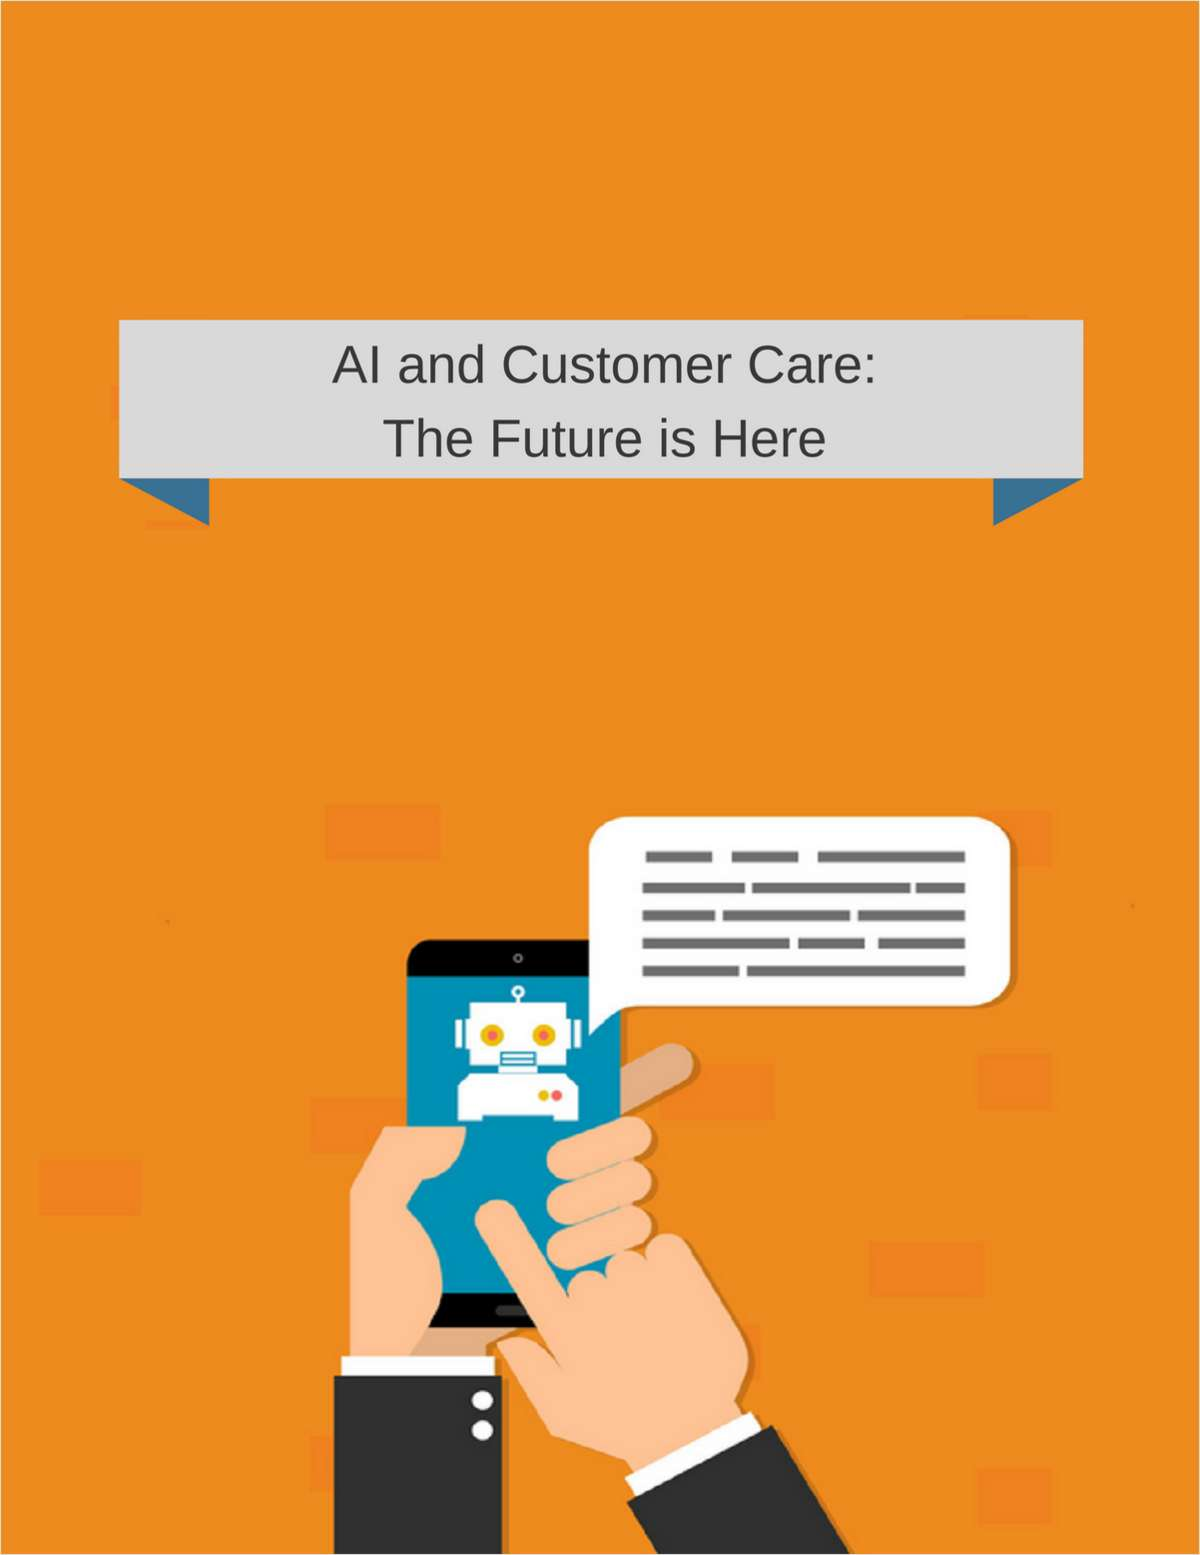 AI and Customer Care: The Future is Here